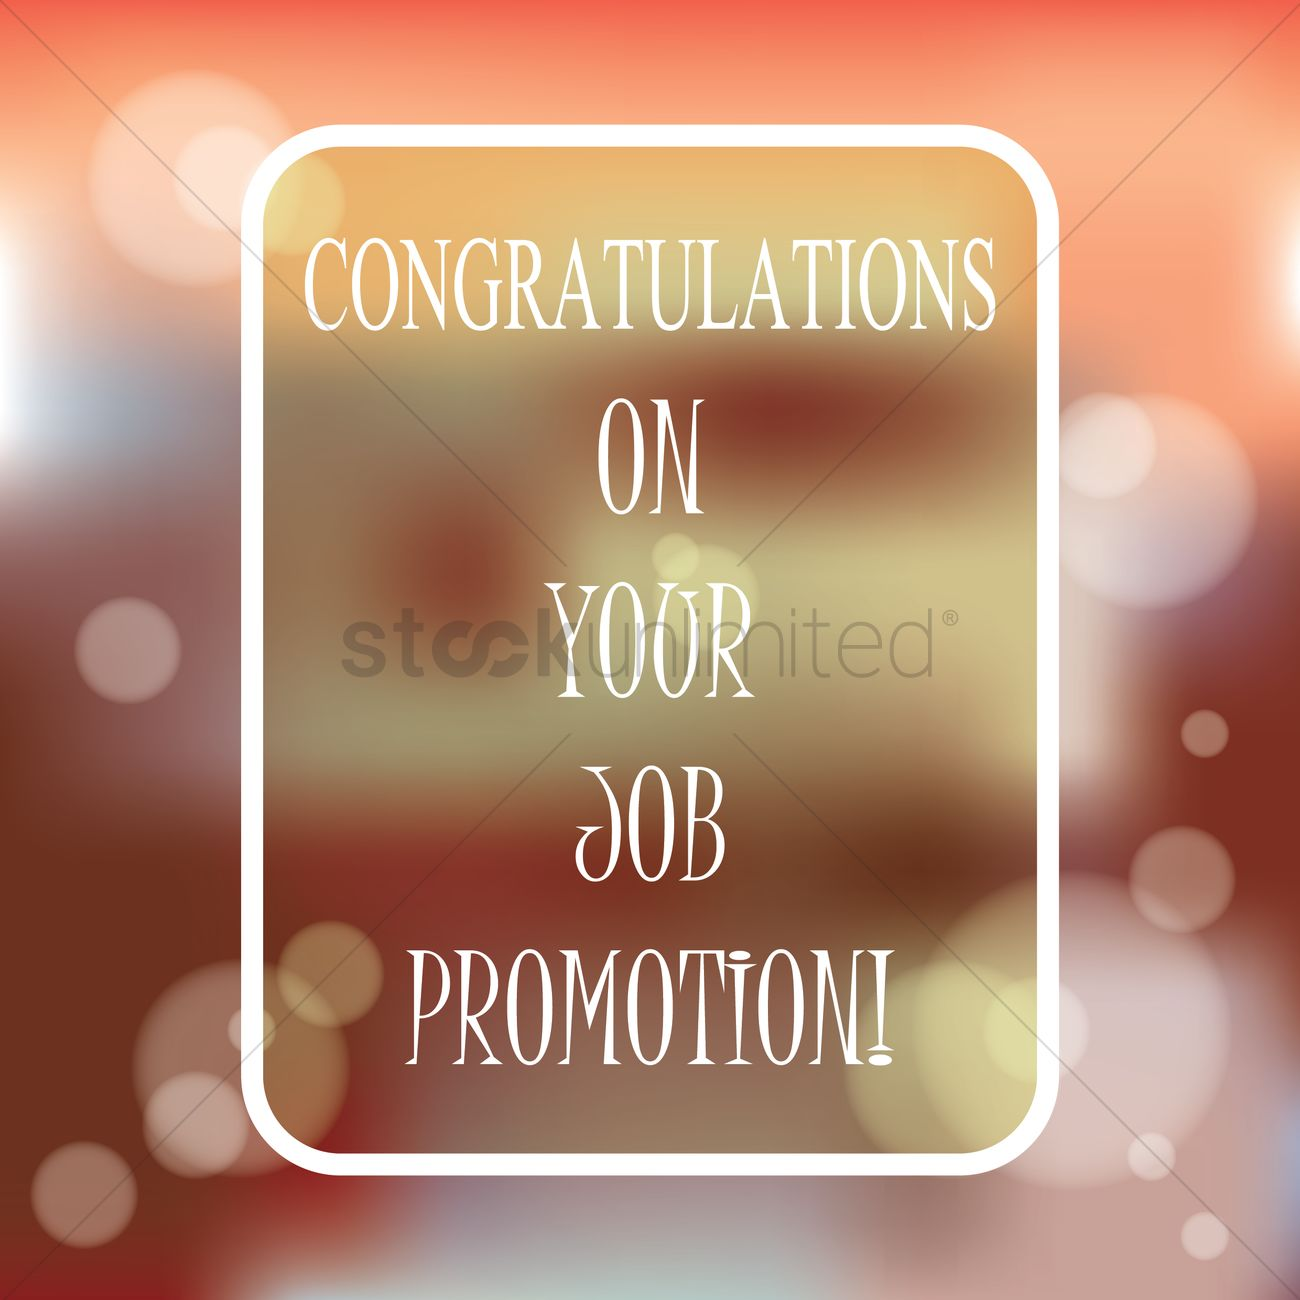 Promotion congratulations images - photo#37